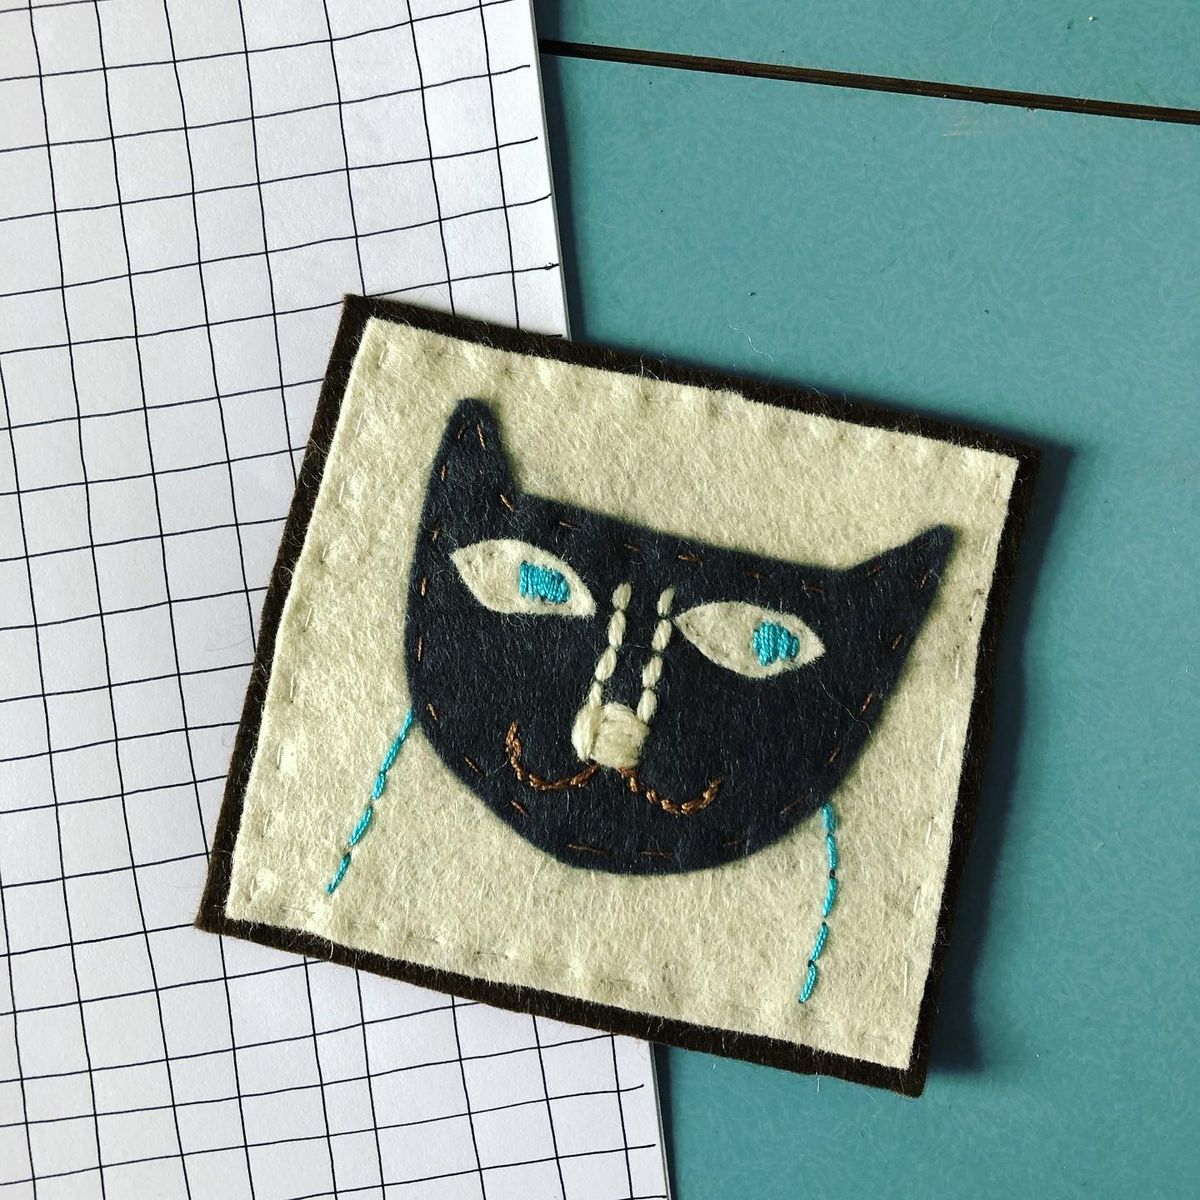 Patch. Made by hand.